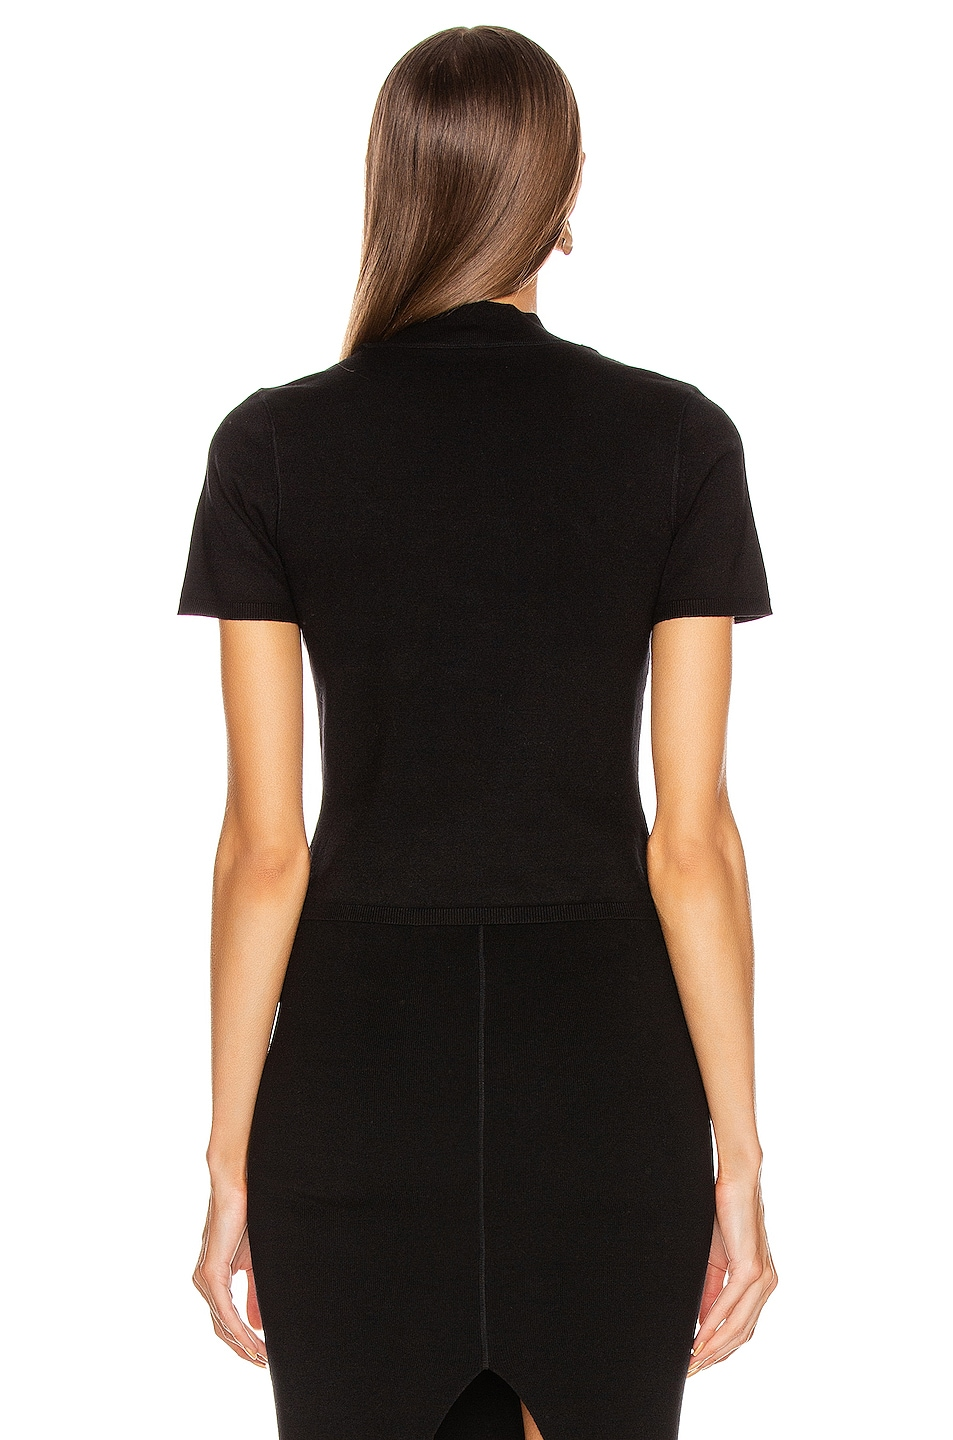 Image 3 of T by Alexander Wang Foundation Bodycon Bralette in Black